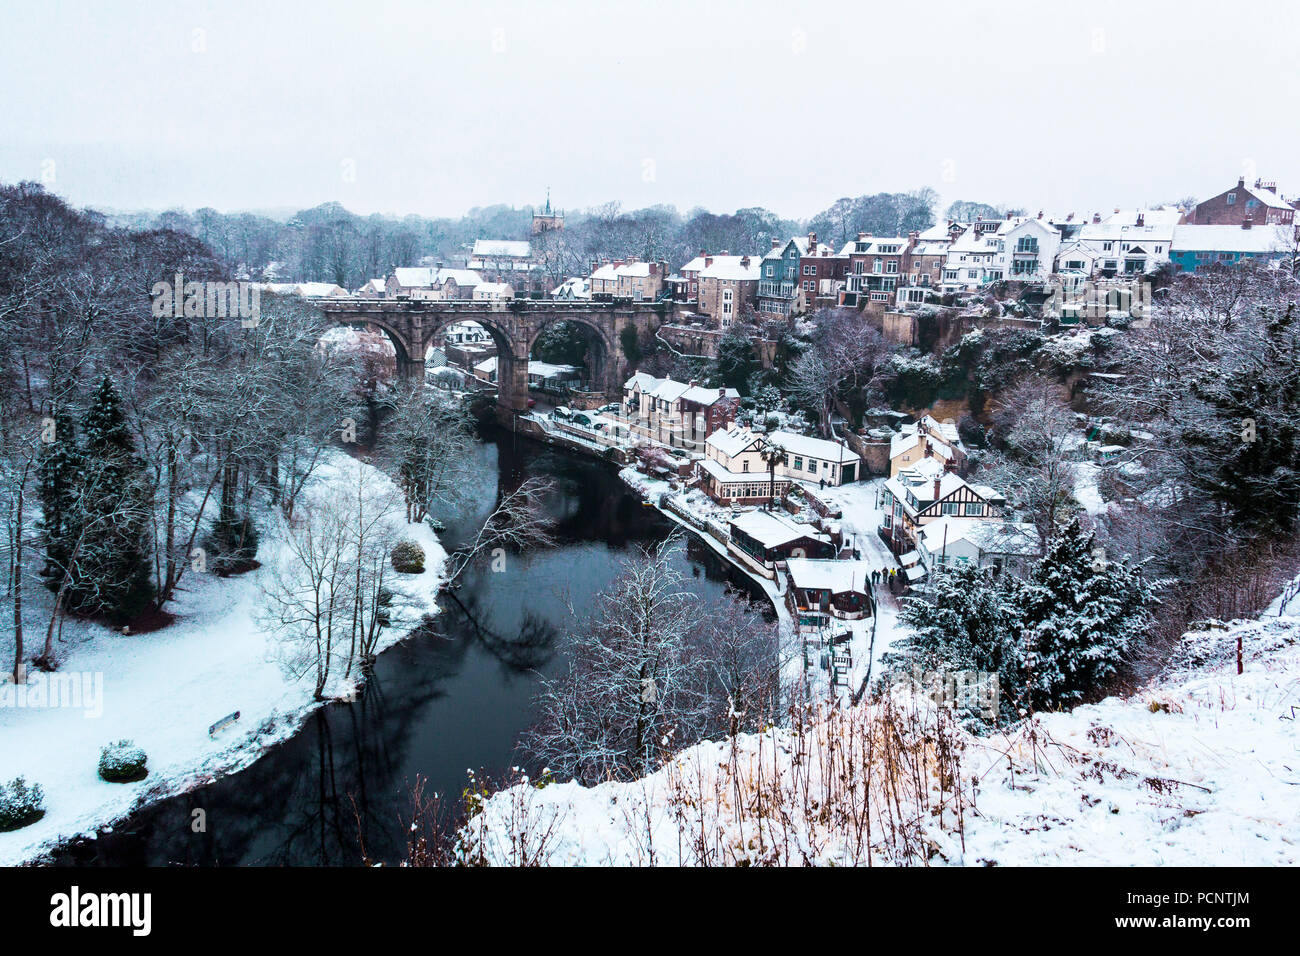 A winter landscape with viaduct in Knaresborough in North Yorkshire during snowy day in England. Winter photo in cool colors. - Stock Image